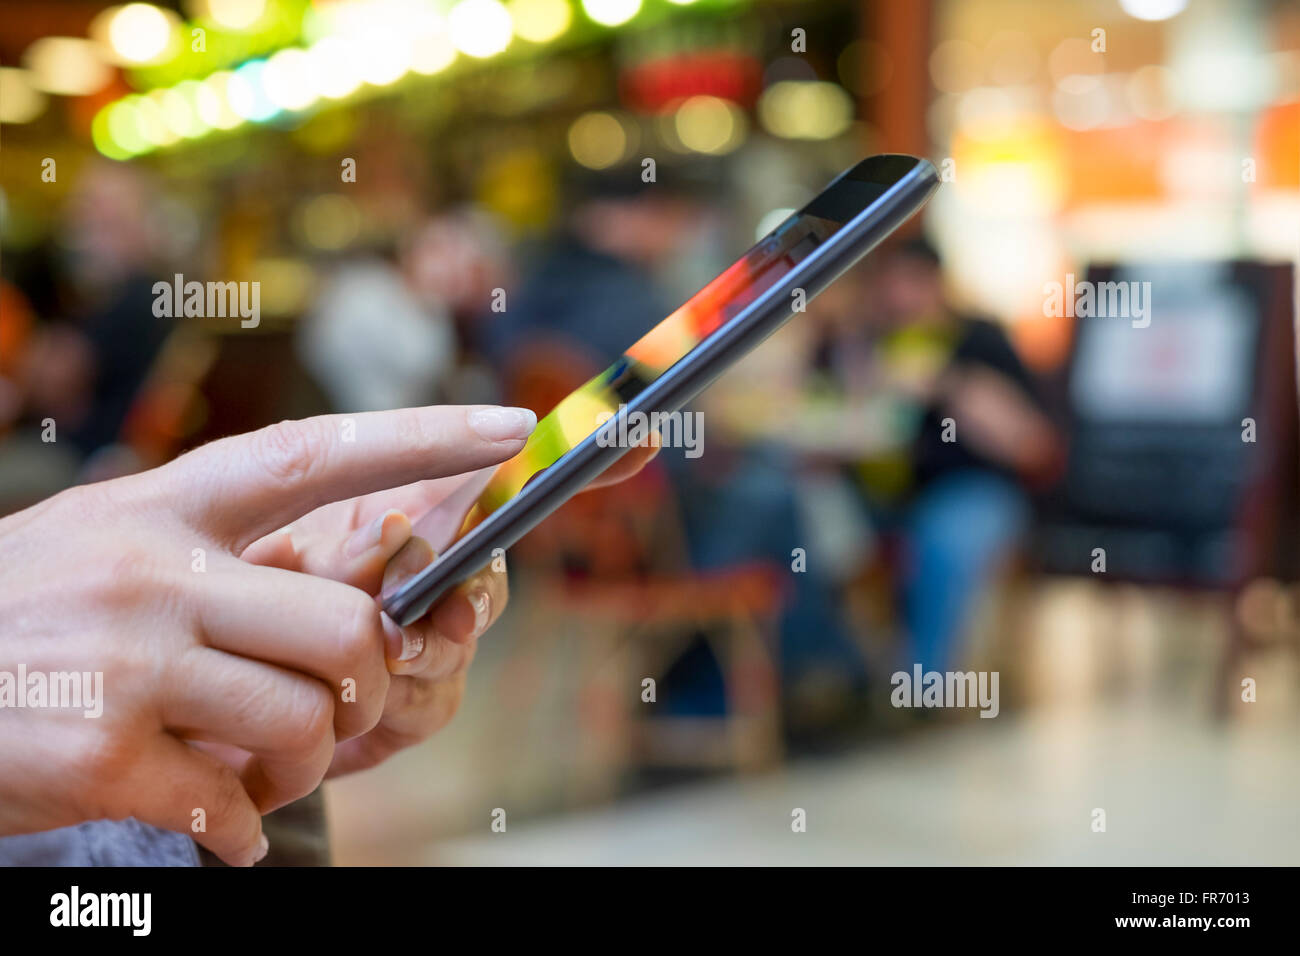 Woman using cell phone in mall. App, texting, sms, message, mail - Stock Image